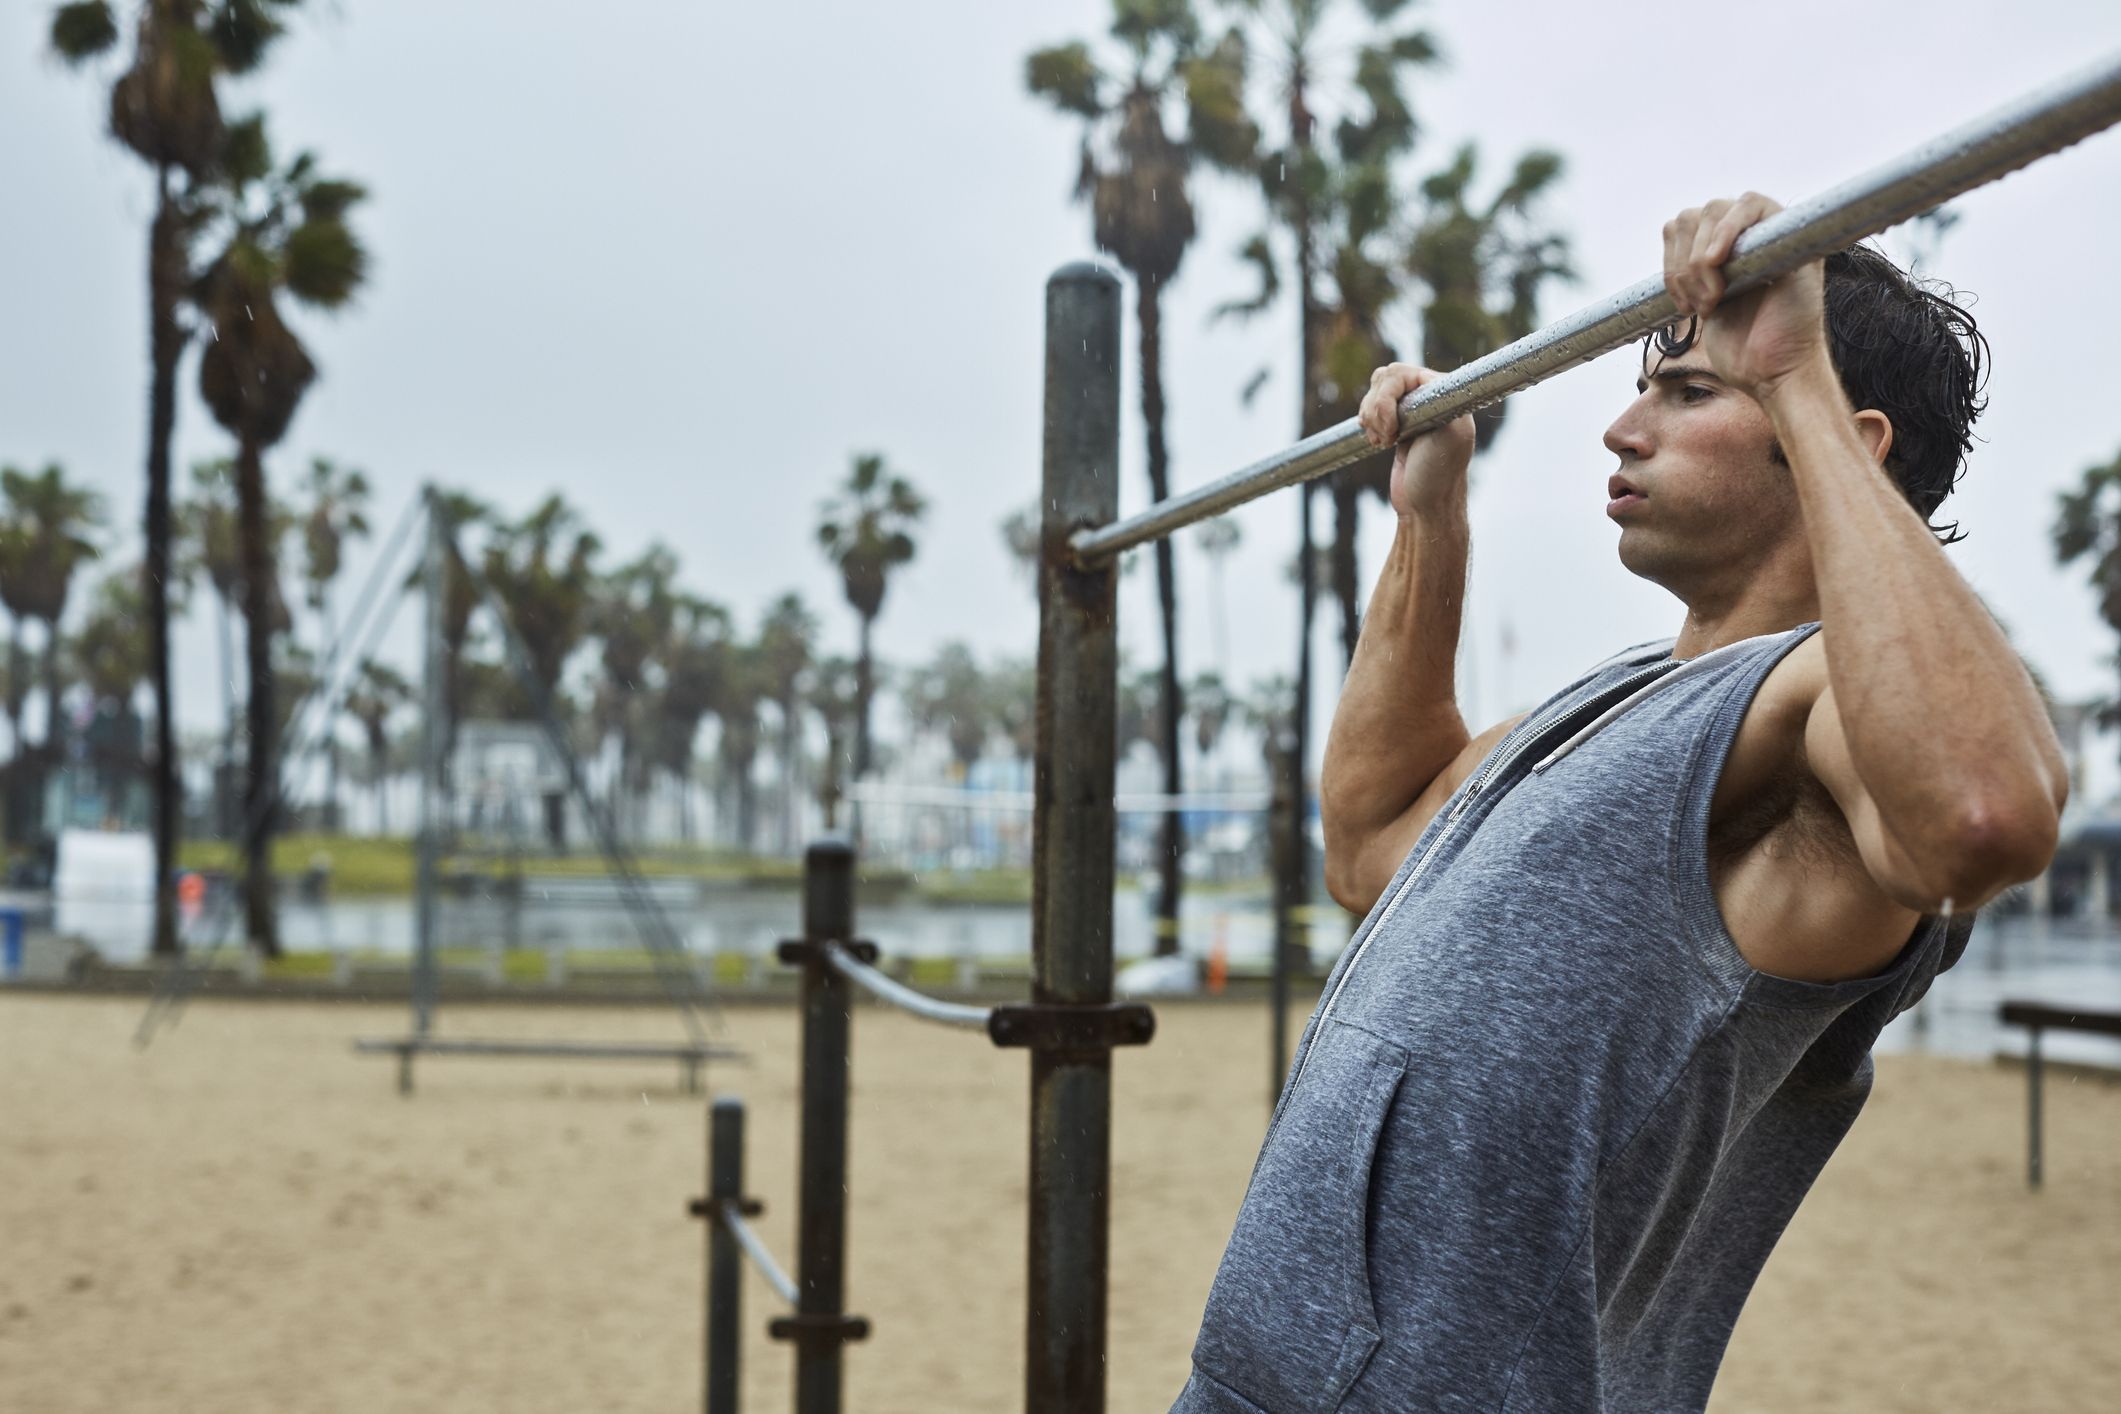 Pull up Bar | 10 Ways to Use One